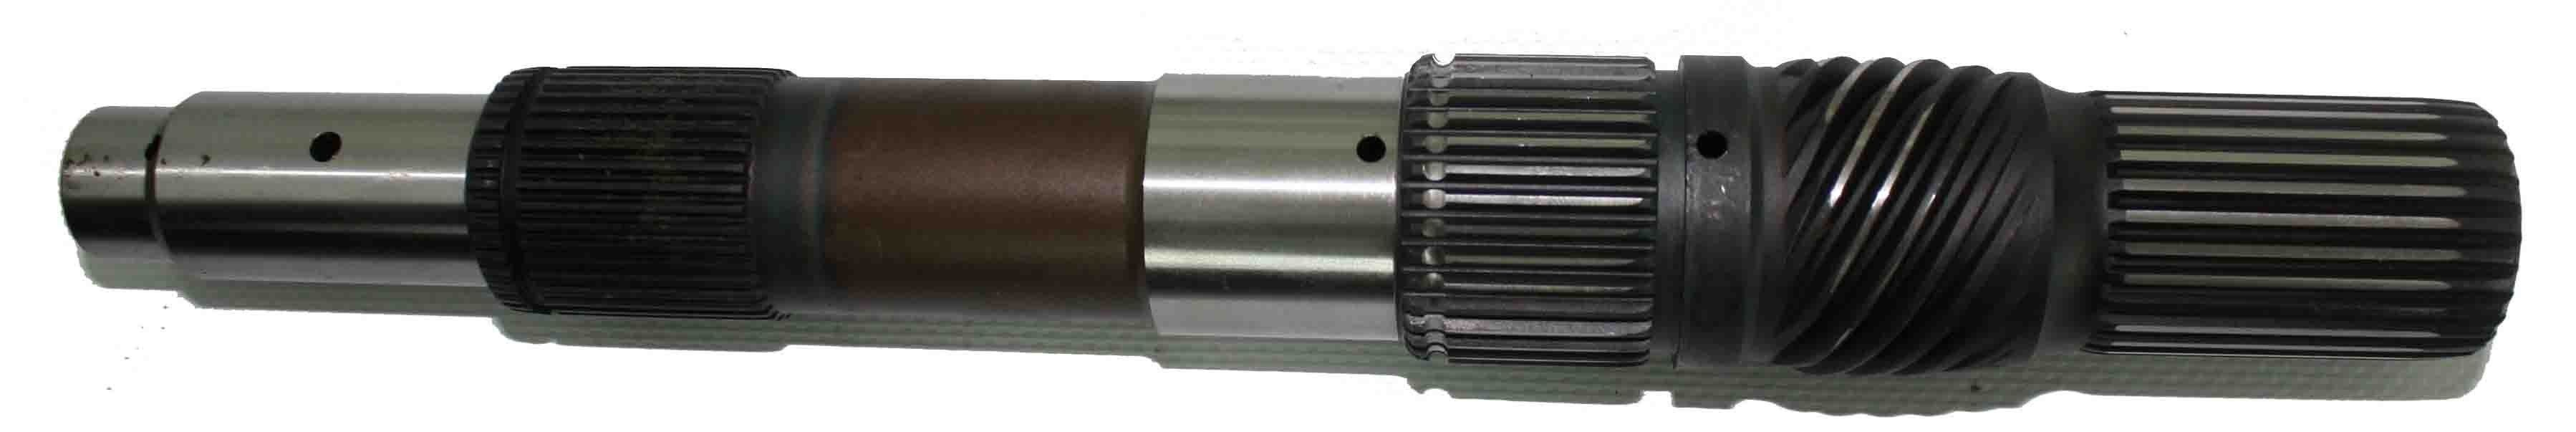 50 5705 Gm 700r4 To Toyota Truck 21 Spline Gear Driven Transfer Vacuum Diagram The One Piece Output Shaft Used In This Kit Is Made Out Of 4340 Alloy Steel Manufactured With Highest Quality Materials